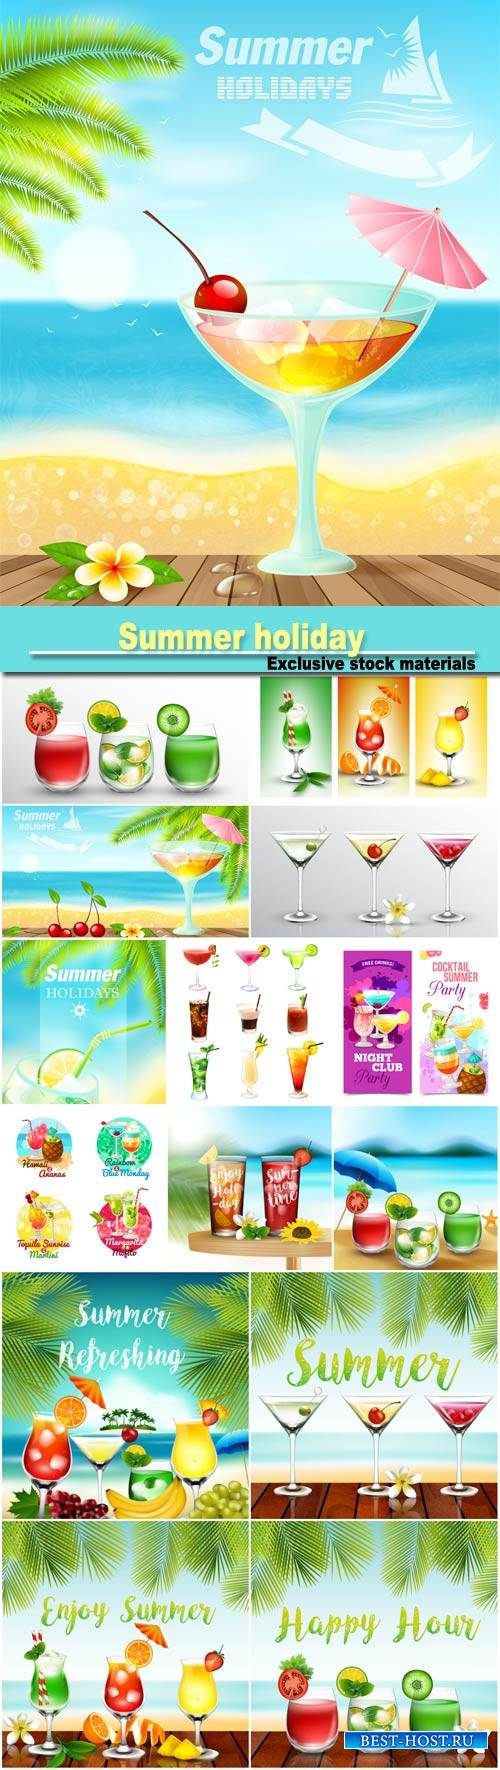 Summer holiday, cocktails, soft drinks